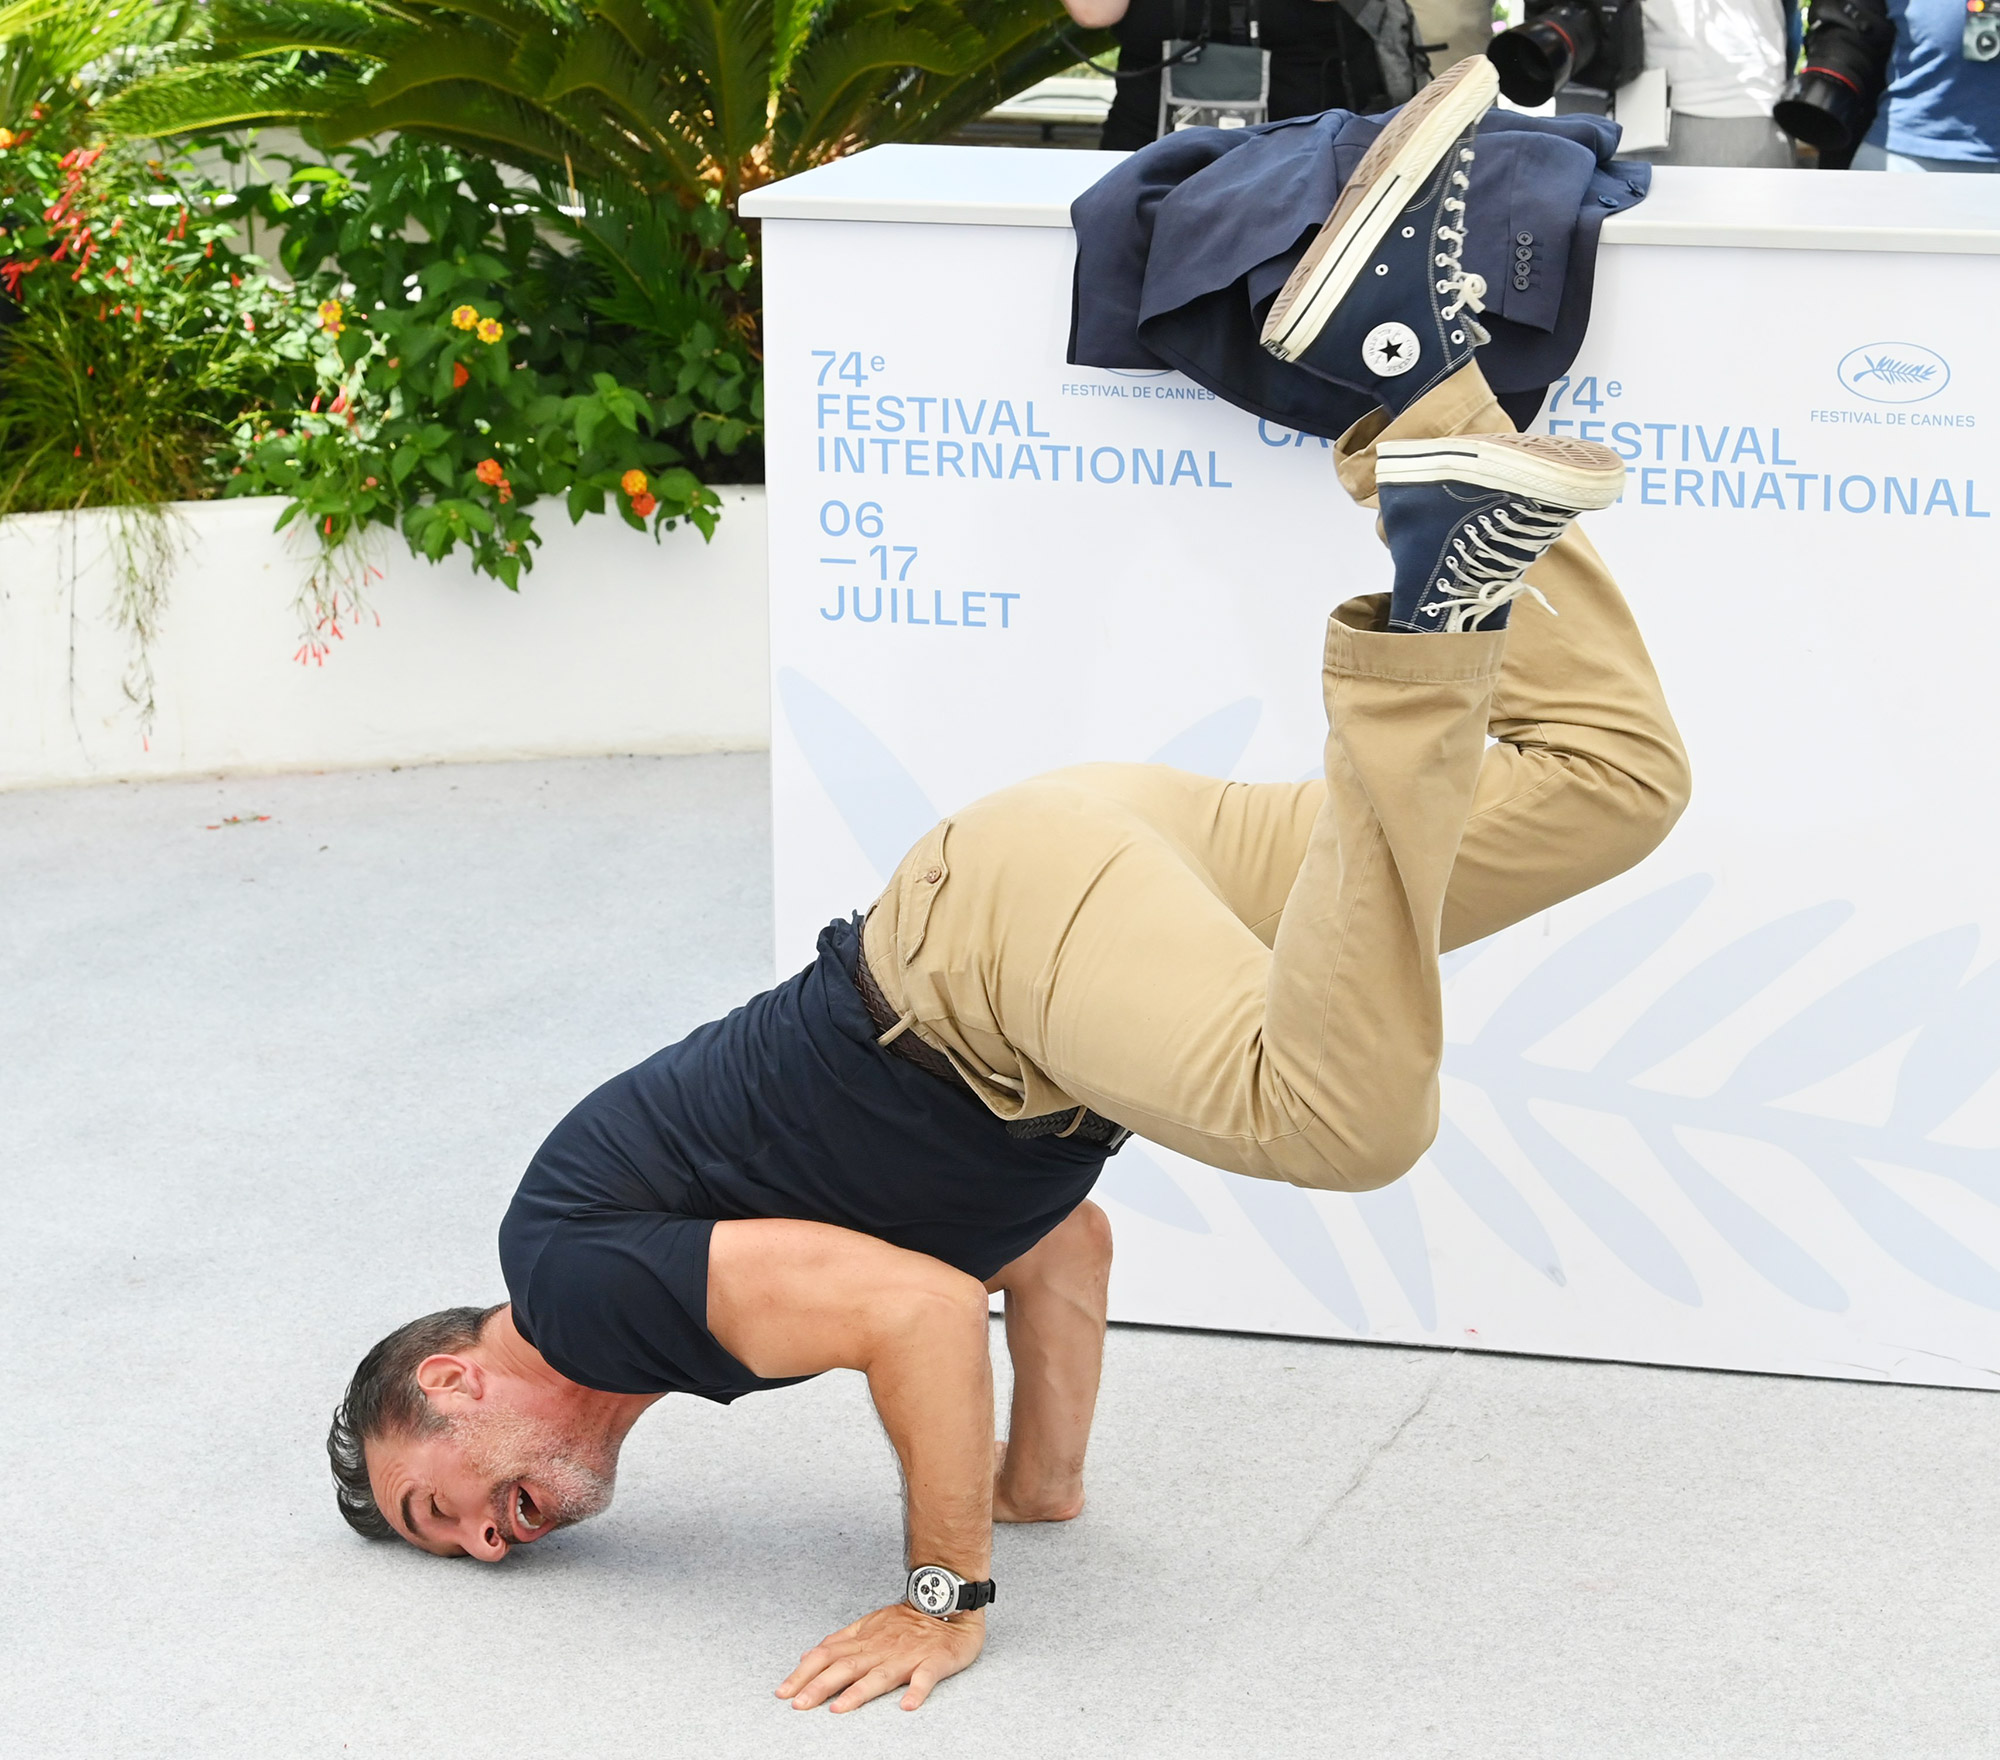 Jean Dujardin dancing 'OSS 117: From Africa with Love' photocall, 74th Cannes Film Festival, France - 17 Jul 2021